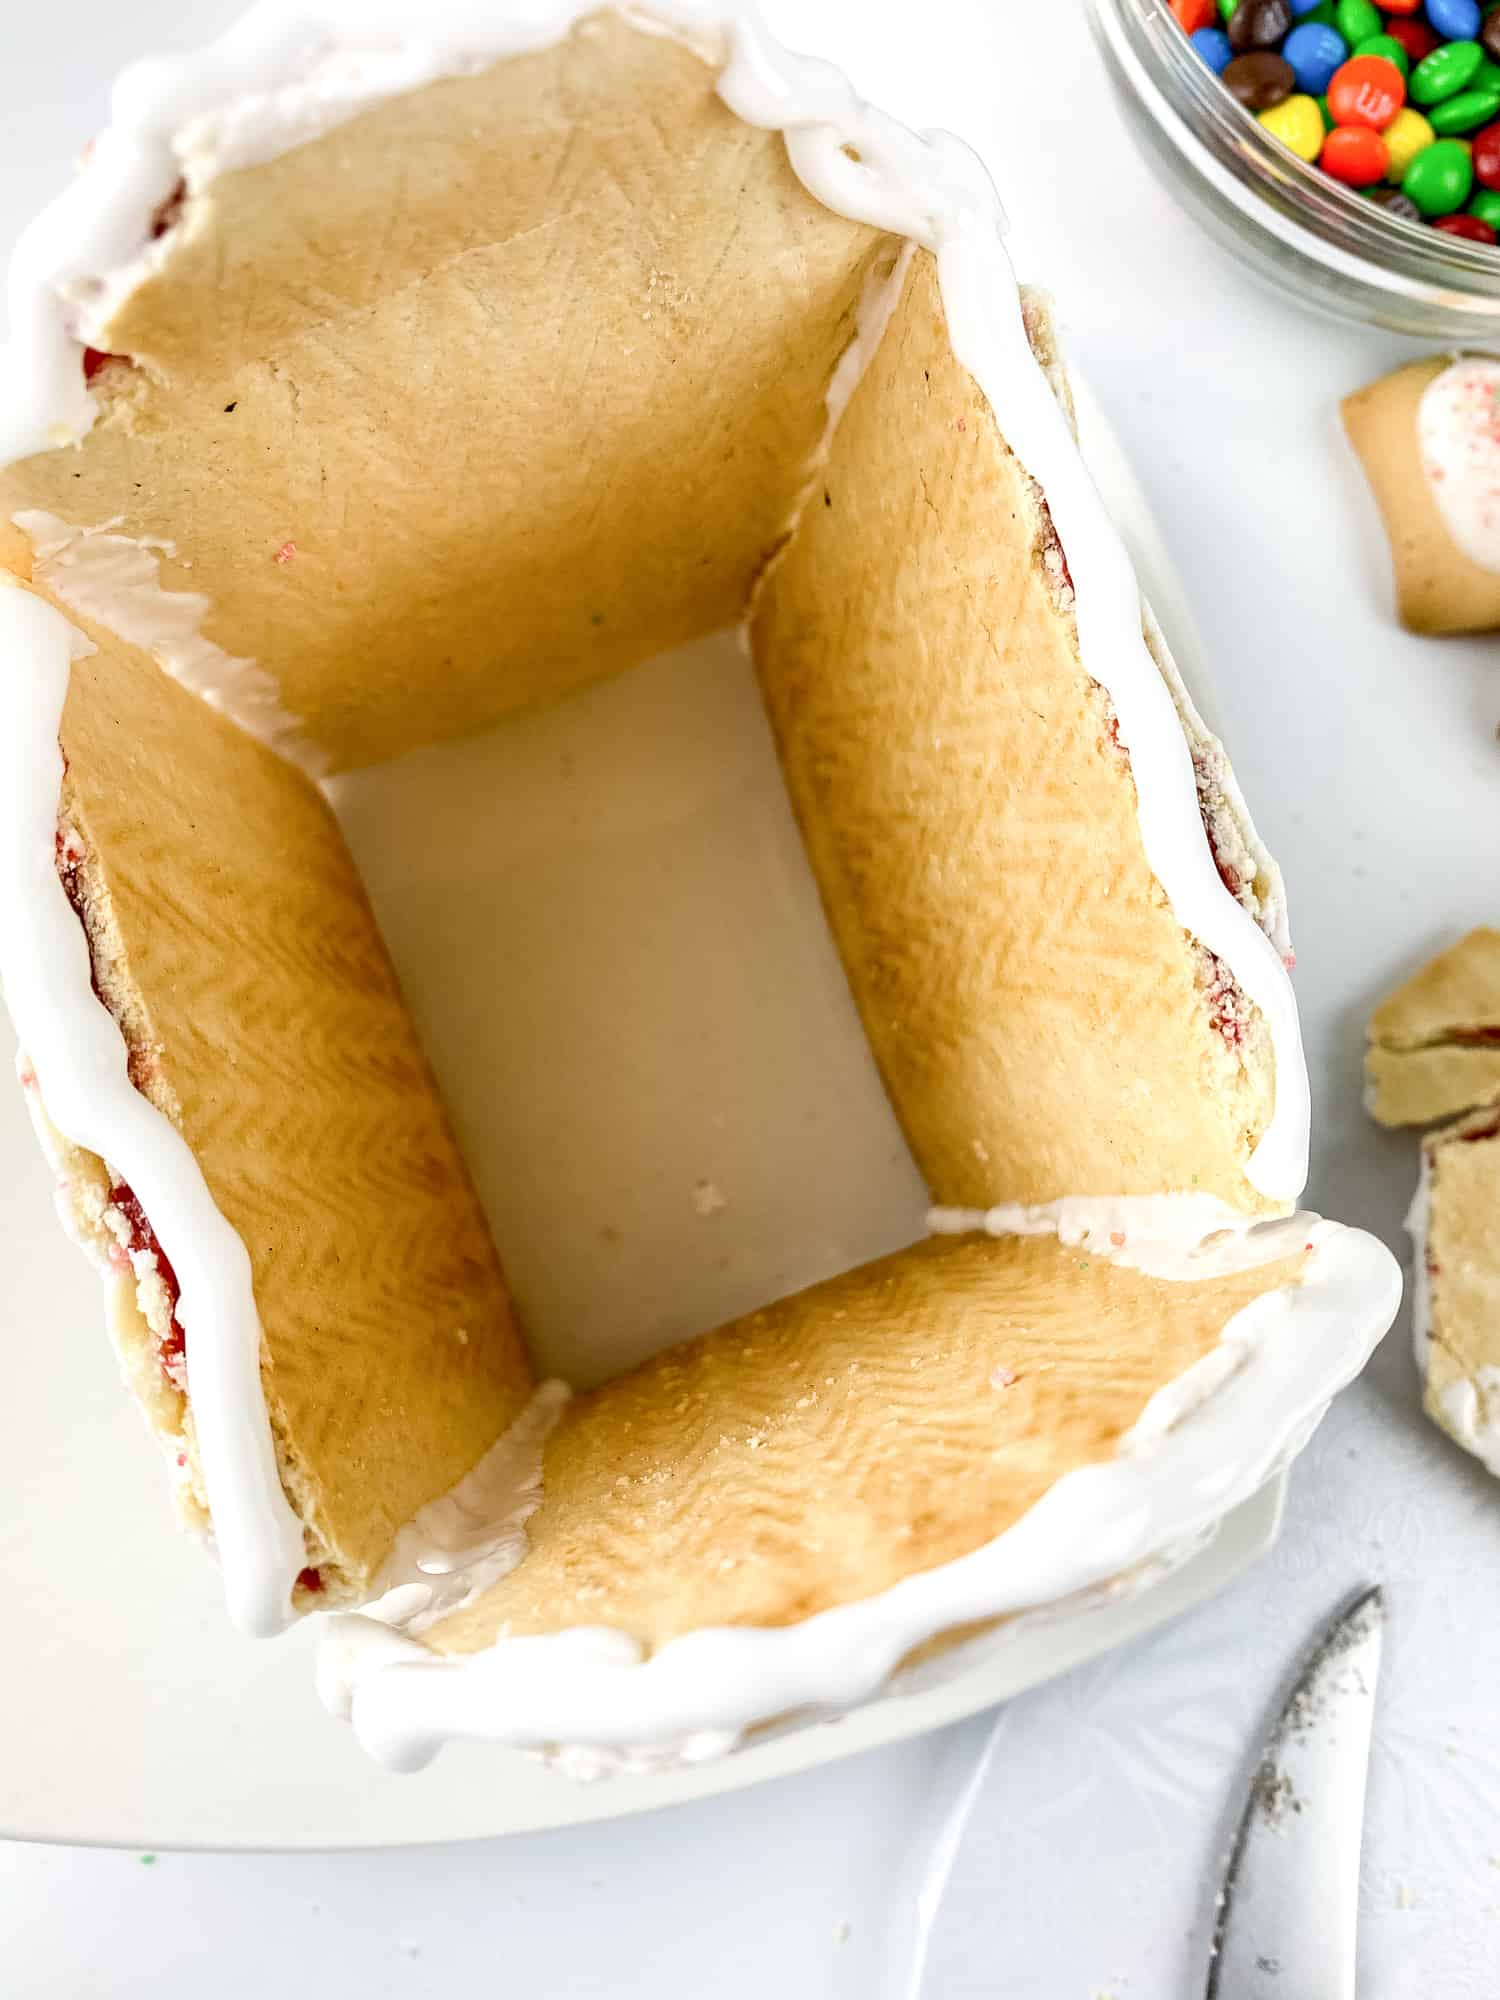 Adding the roof to your no-bake gingerbread house.